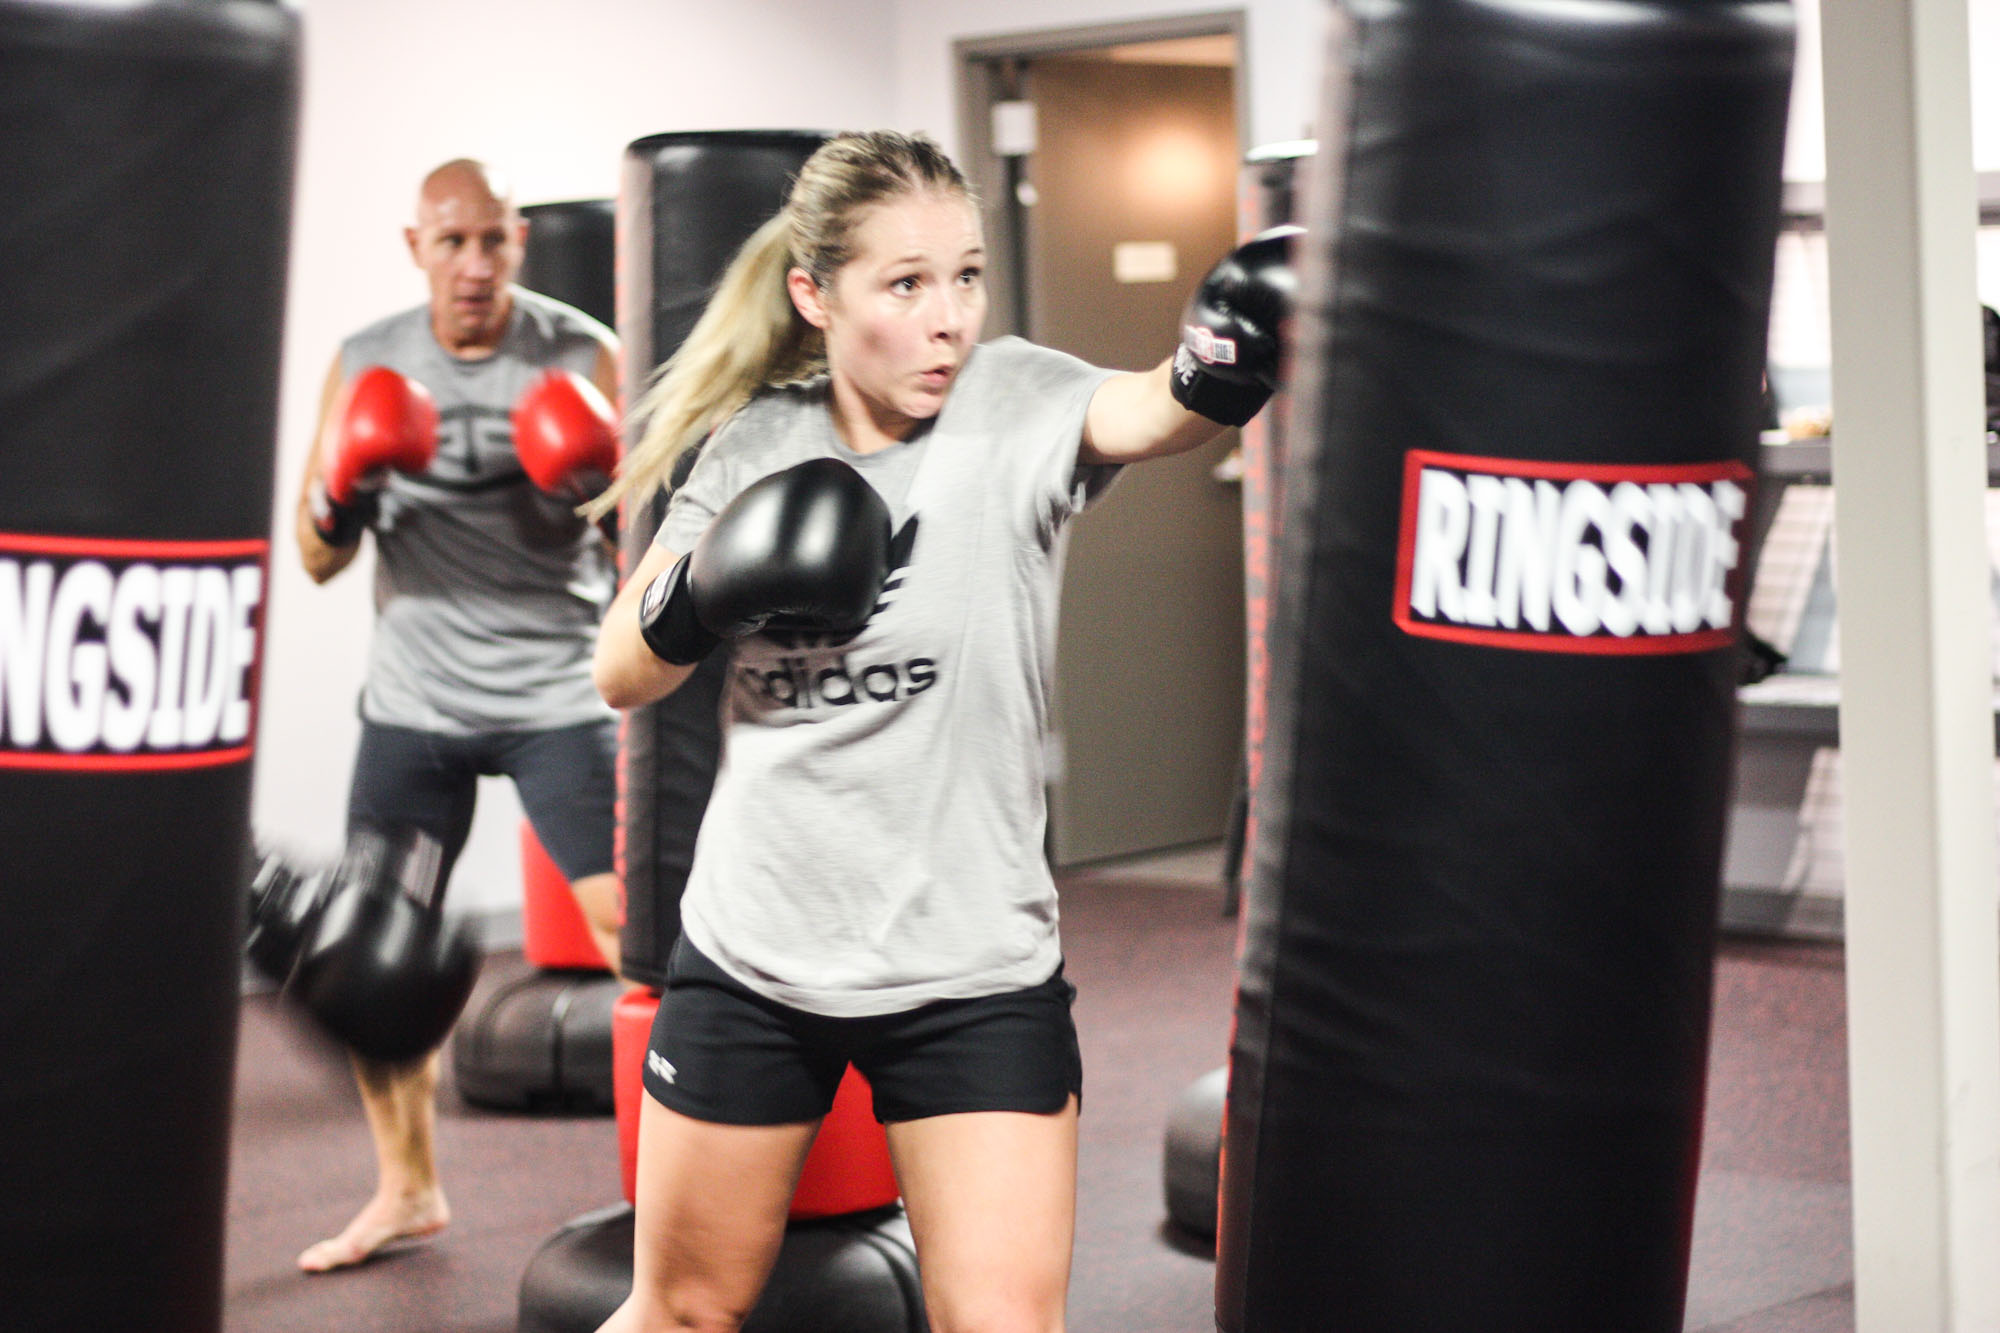 Kickboxers at There's No Quit! Kickboxing and Self Defense Studio in Marion, Iowa